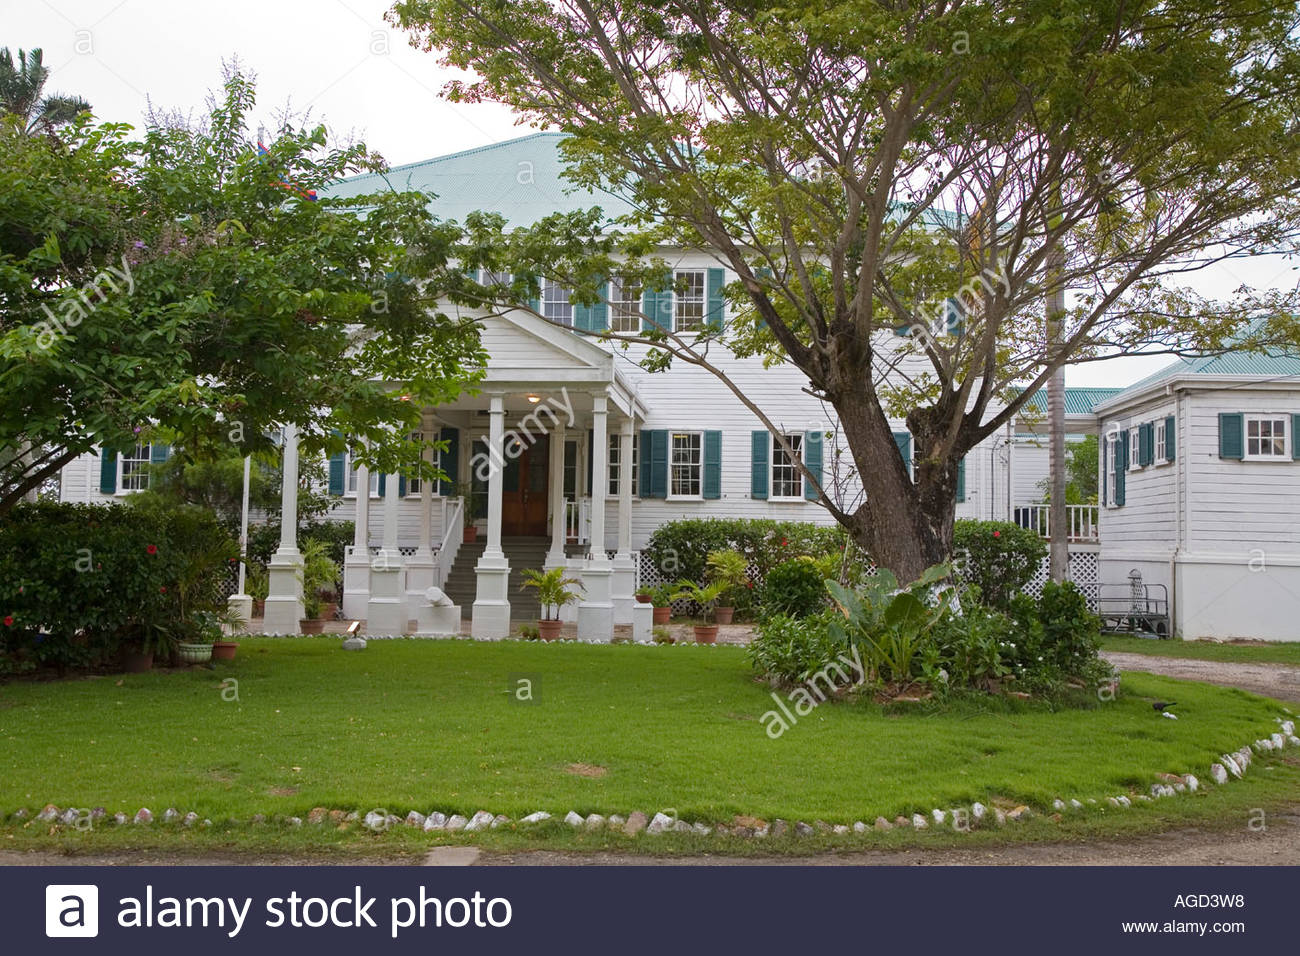 Government House Belize City, Government House in Belize City Stock Photo, Royalty Free Image ...